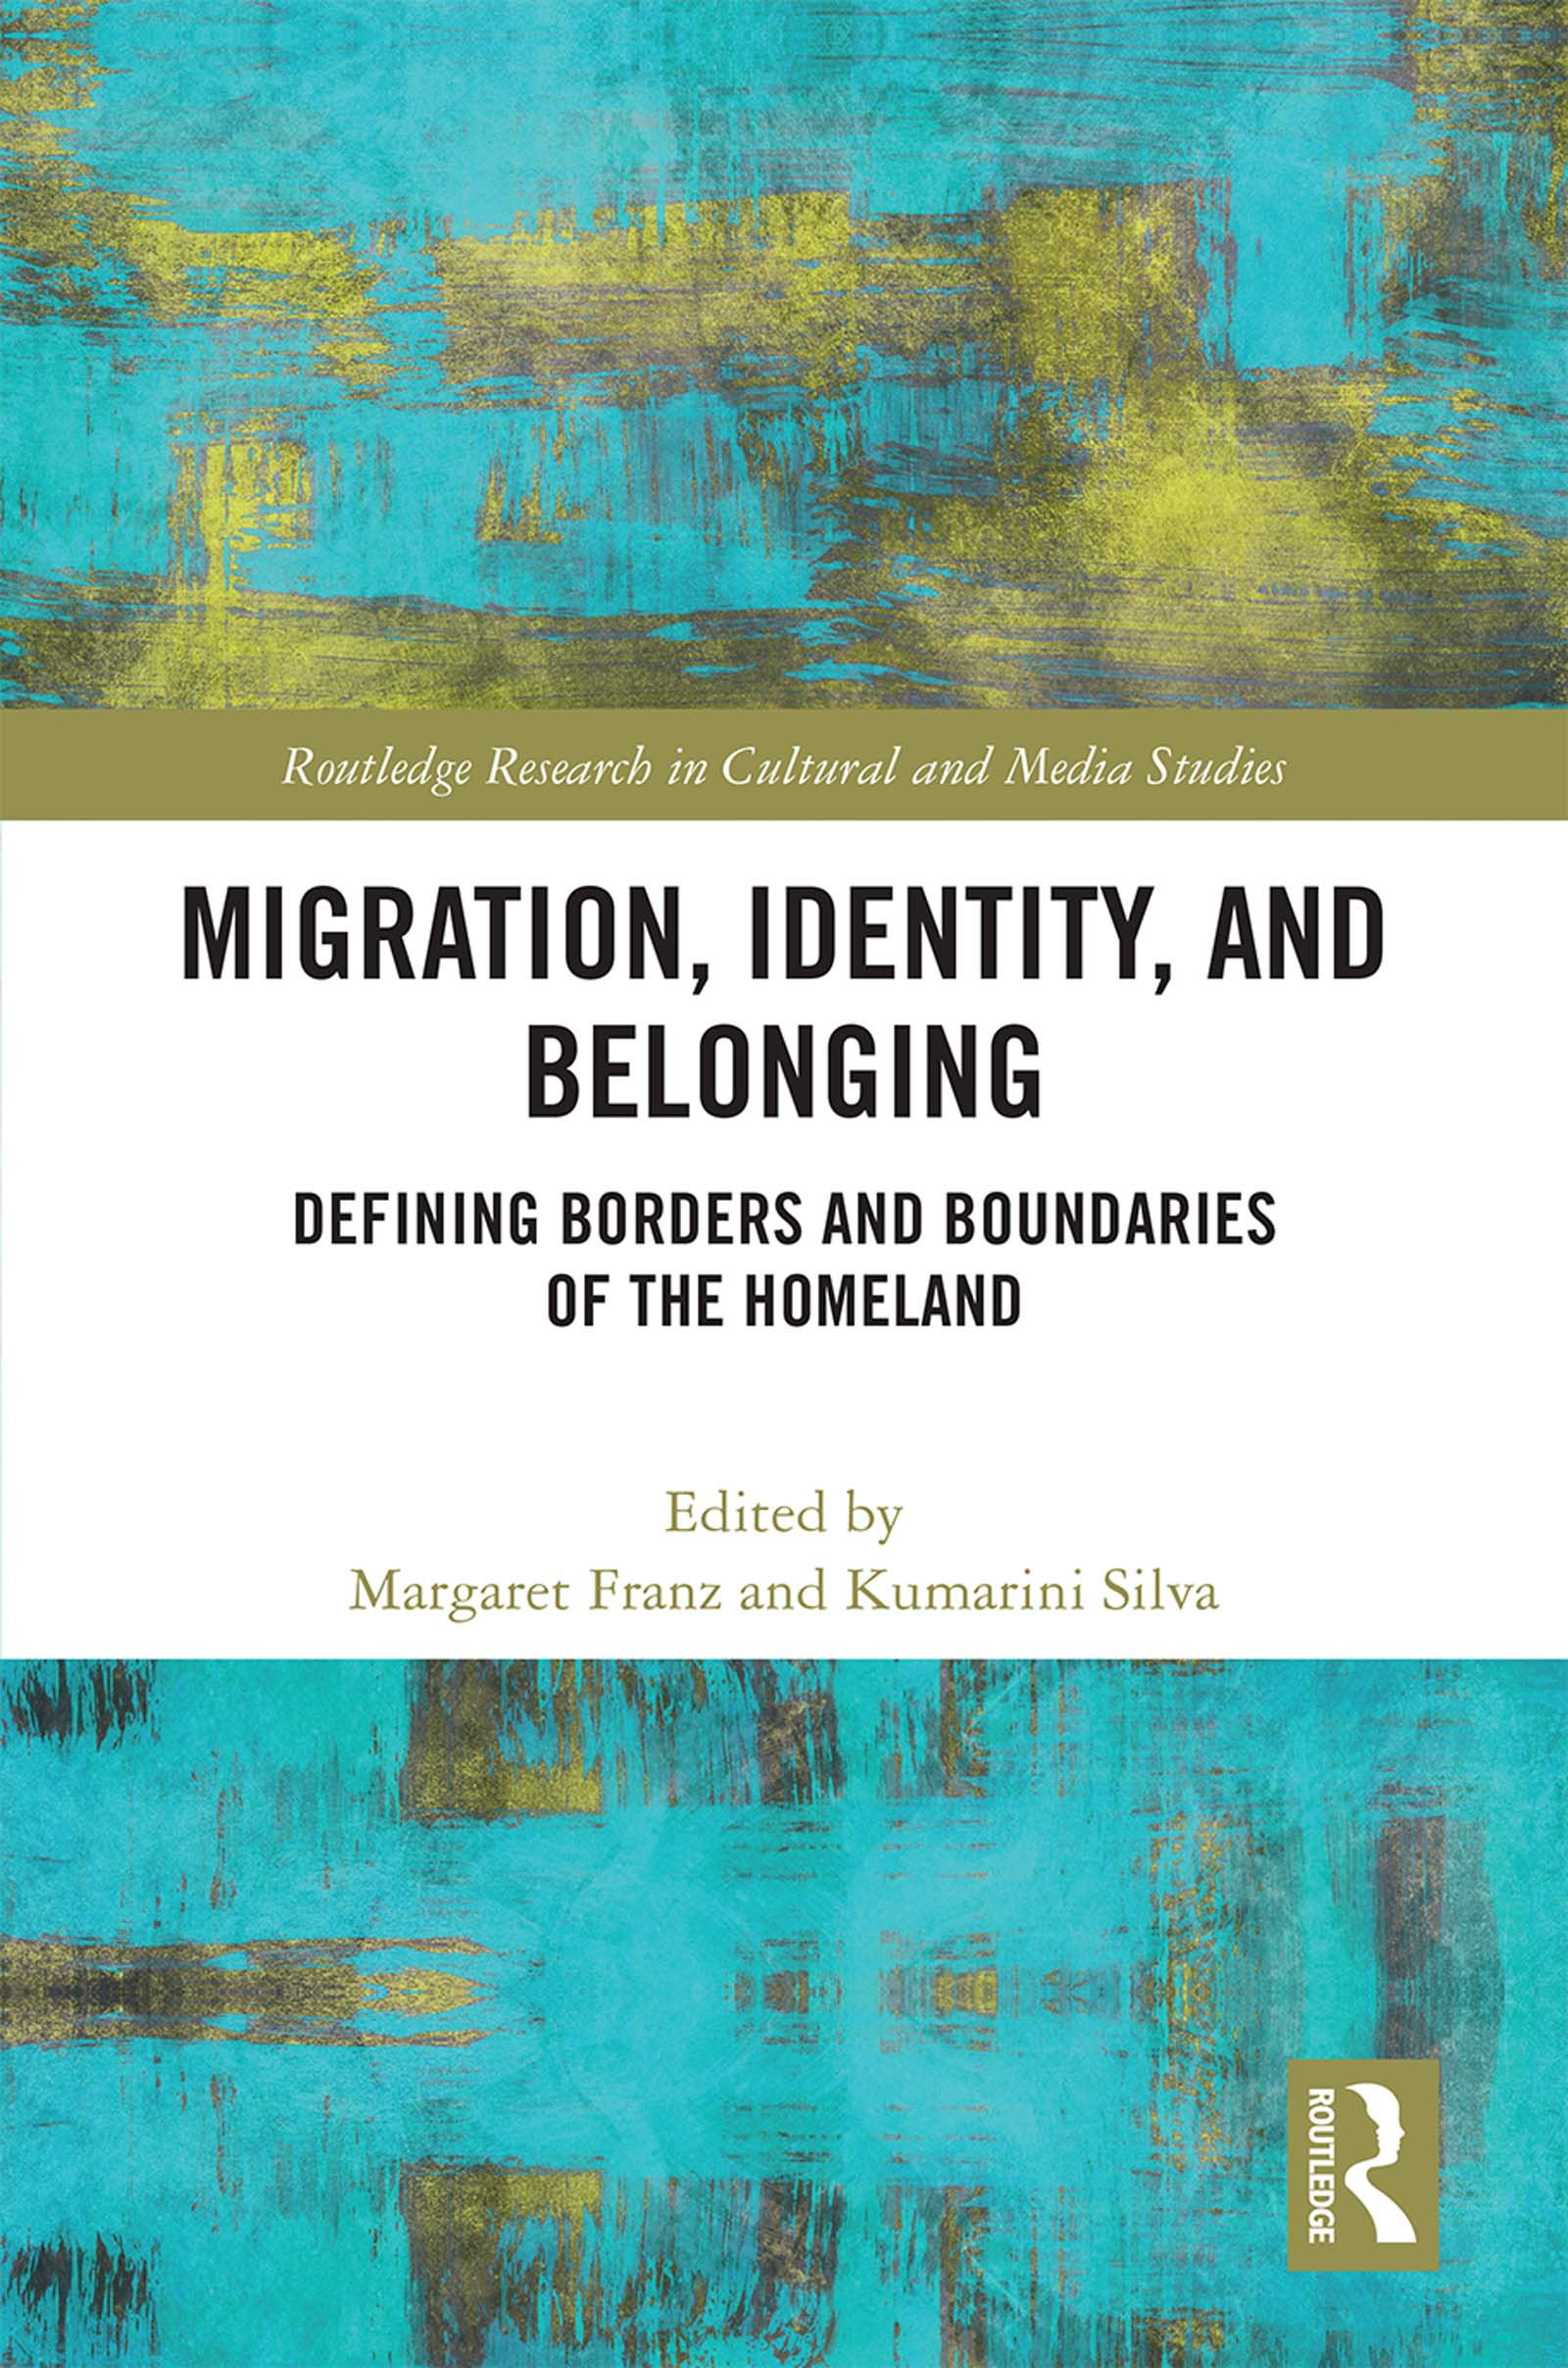 Migration, Identity, and Belonging: Defining Borders and Boundaries of the Homeland book cover